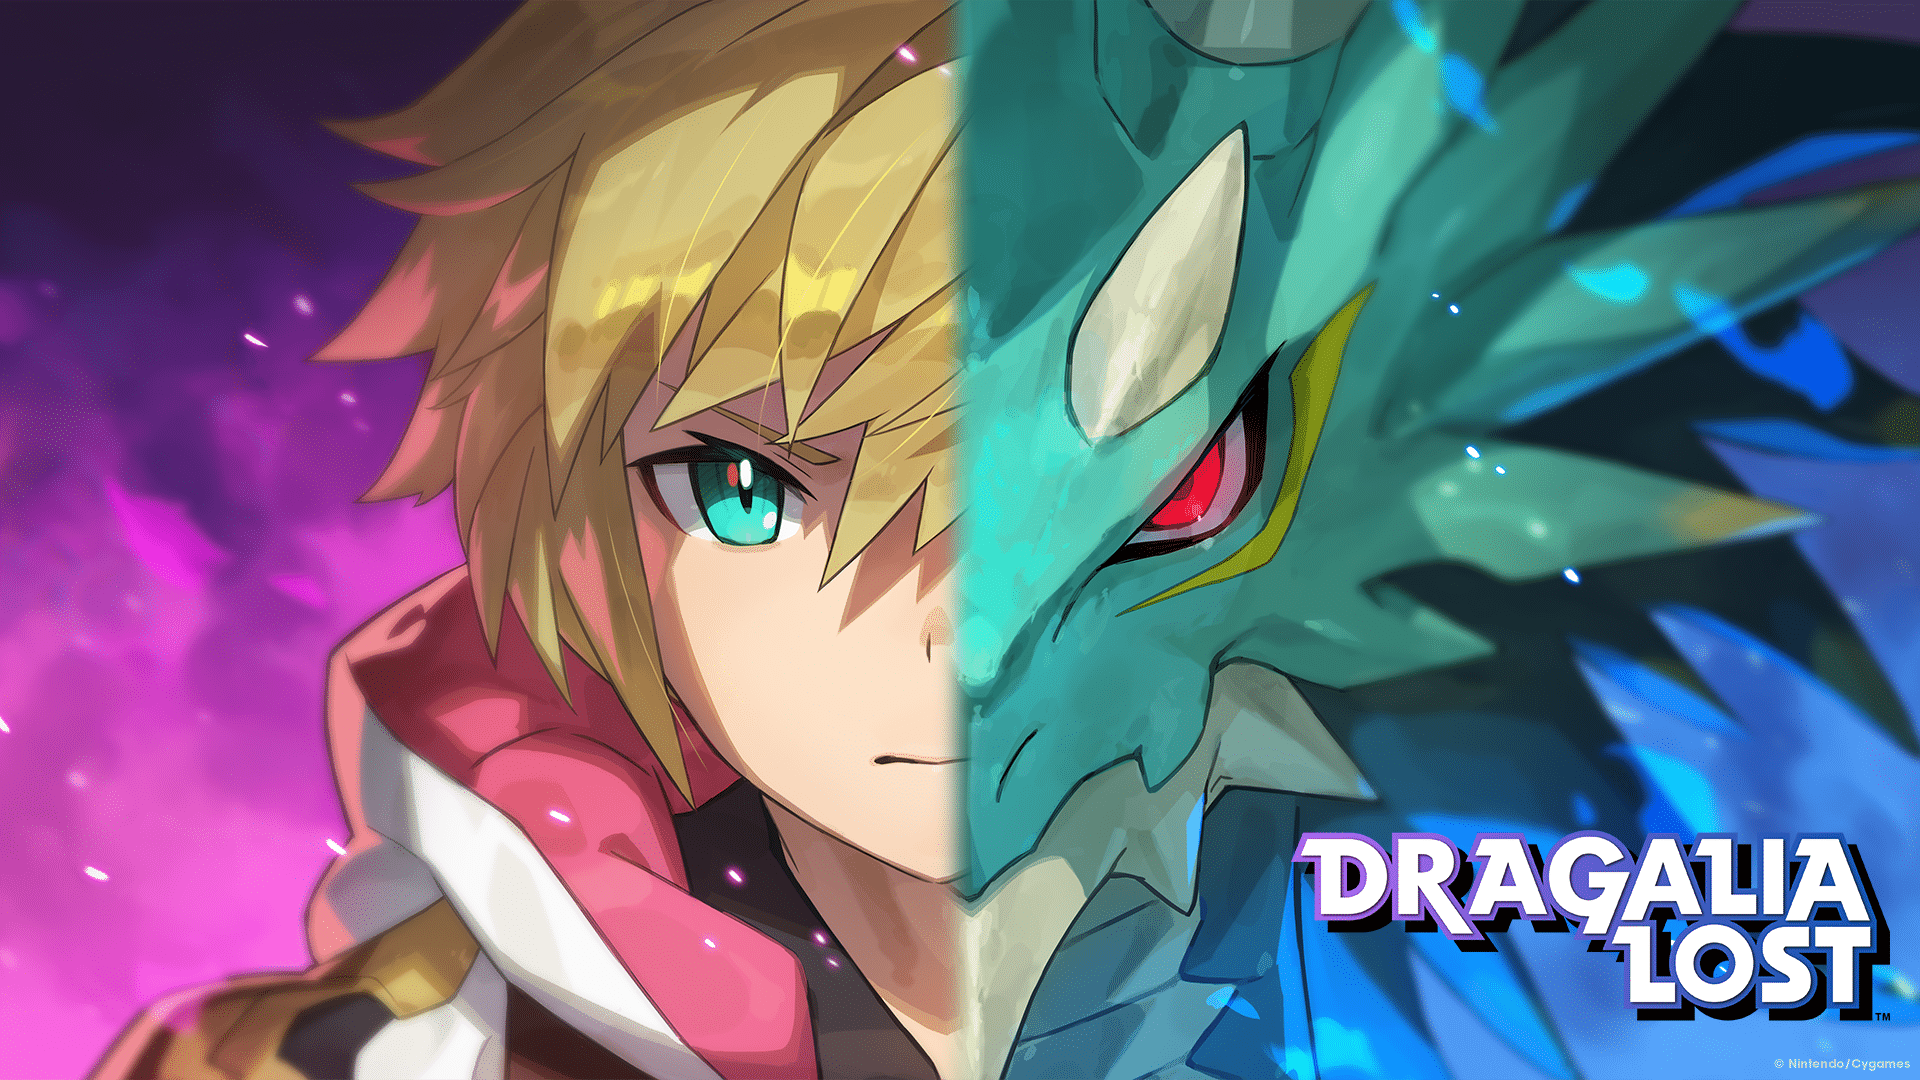 Dragalia Lost trails behind Mobile game, Anime, Game assets